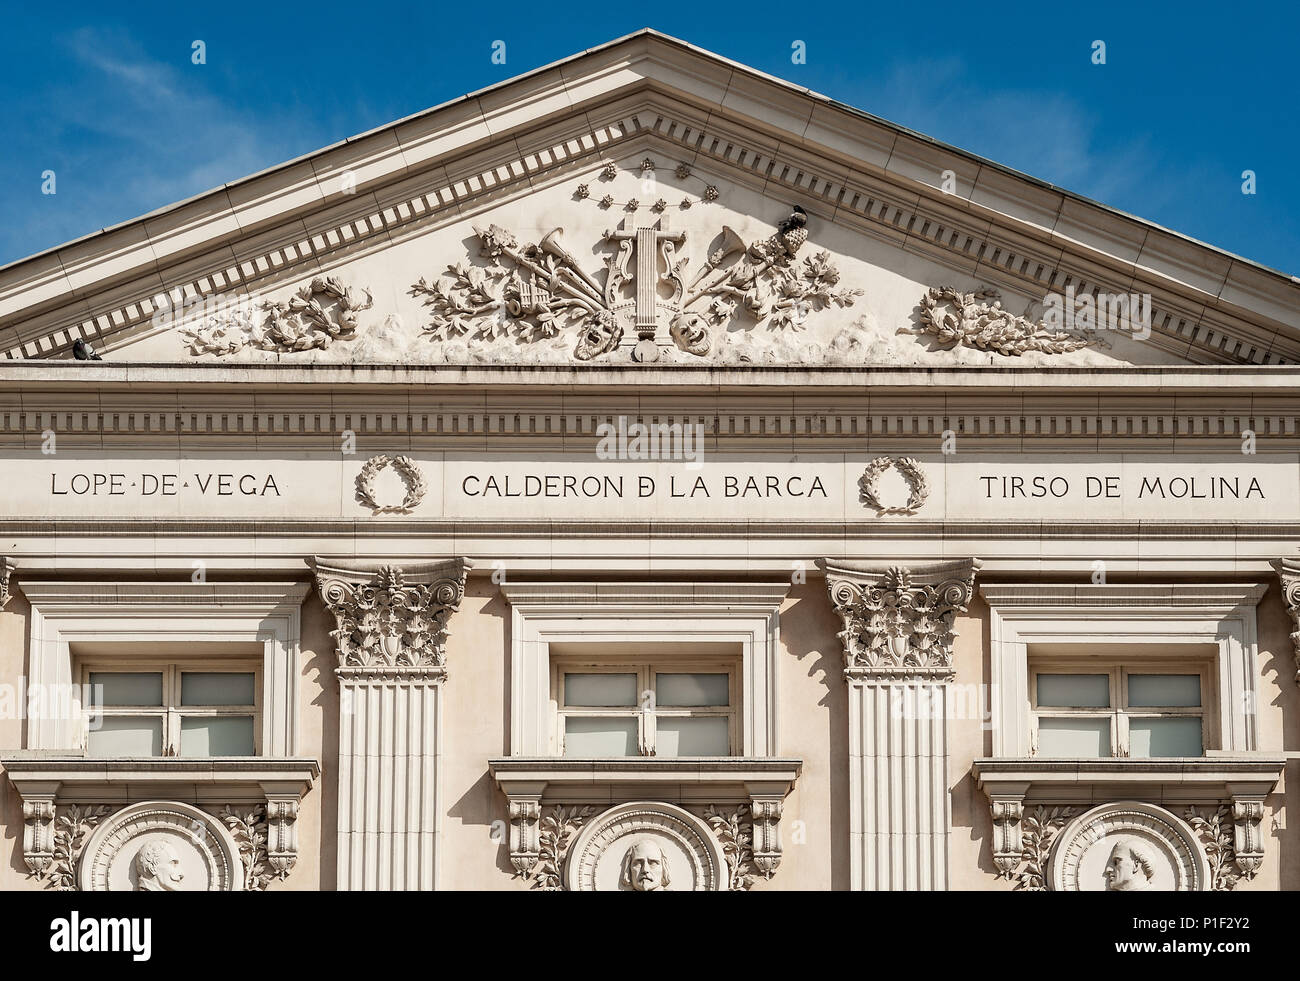 Exterior detail of the Teatro Espanol, Madrid, Spain. - Stock Image